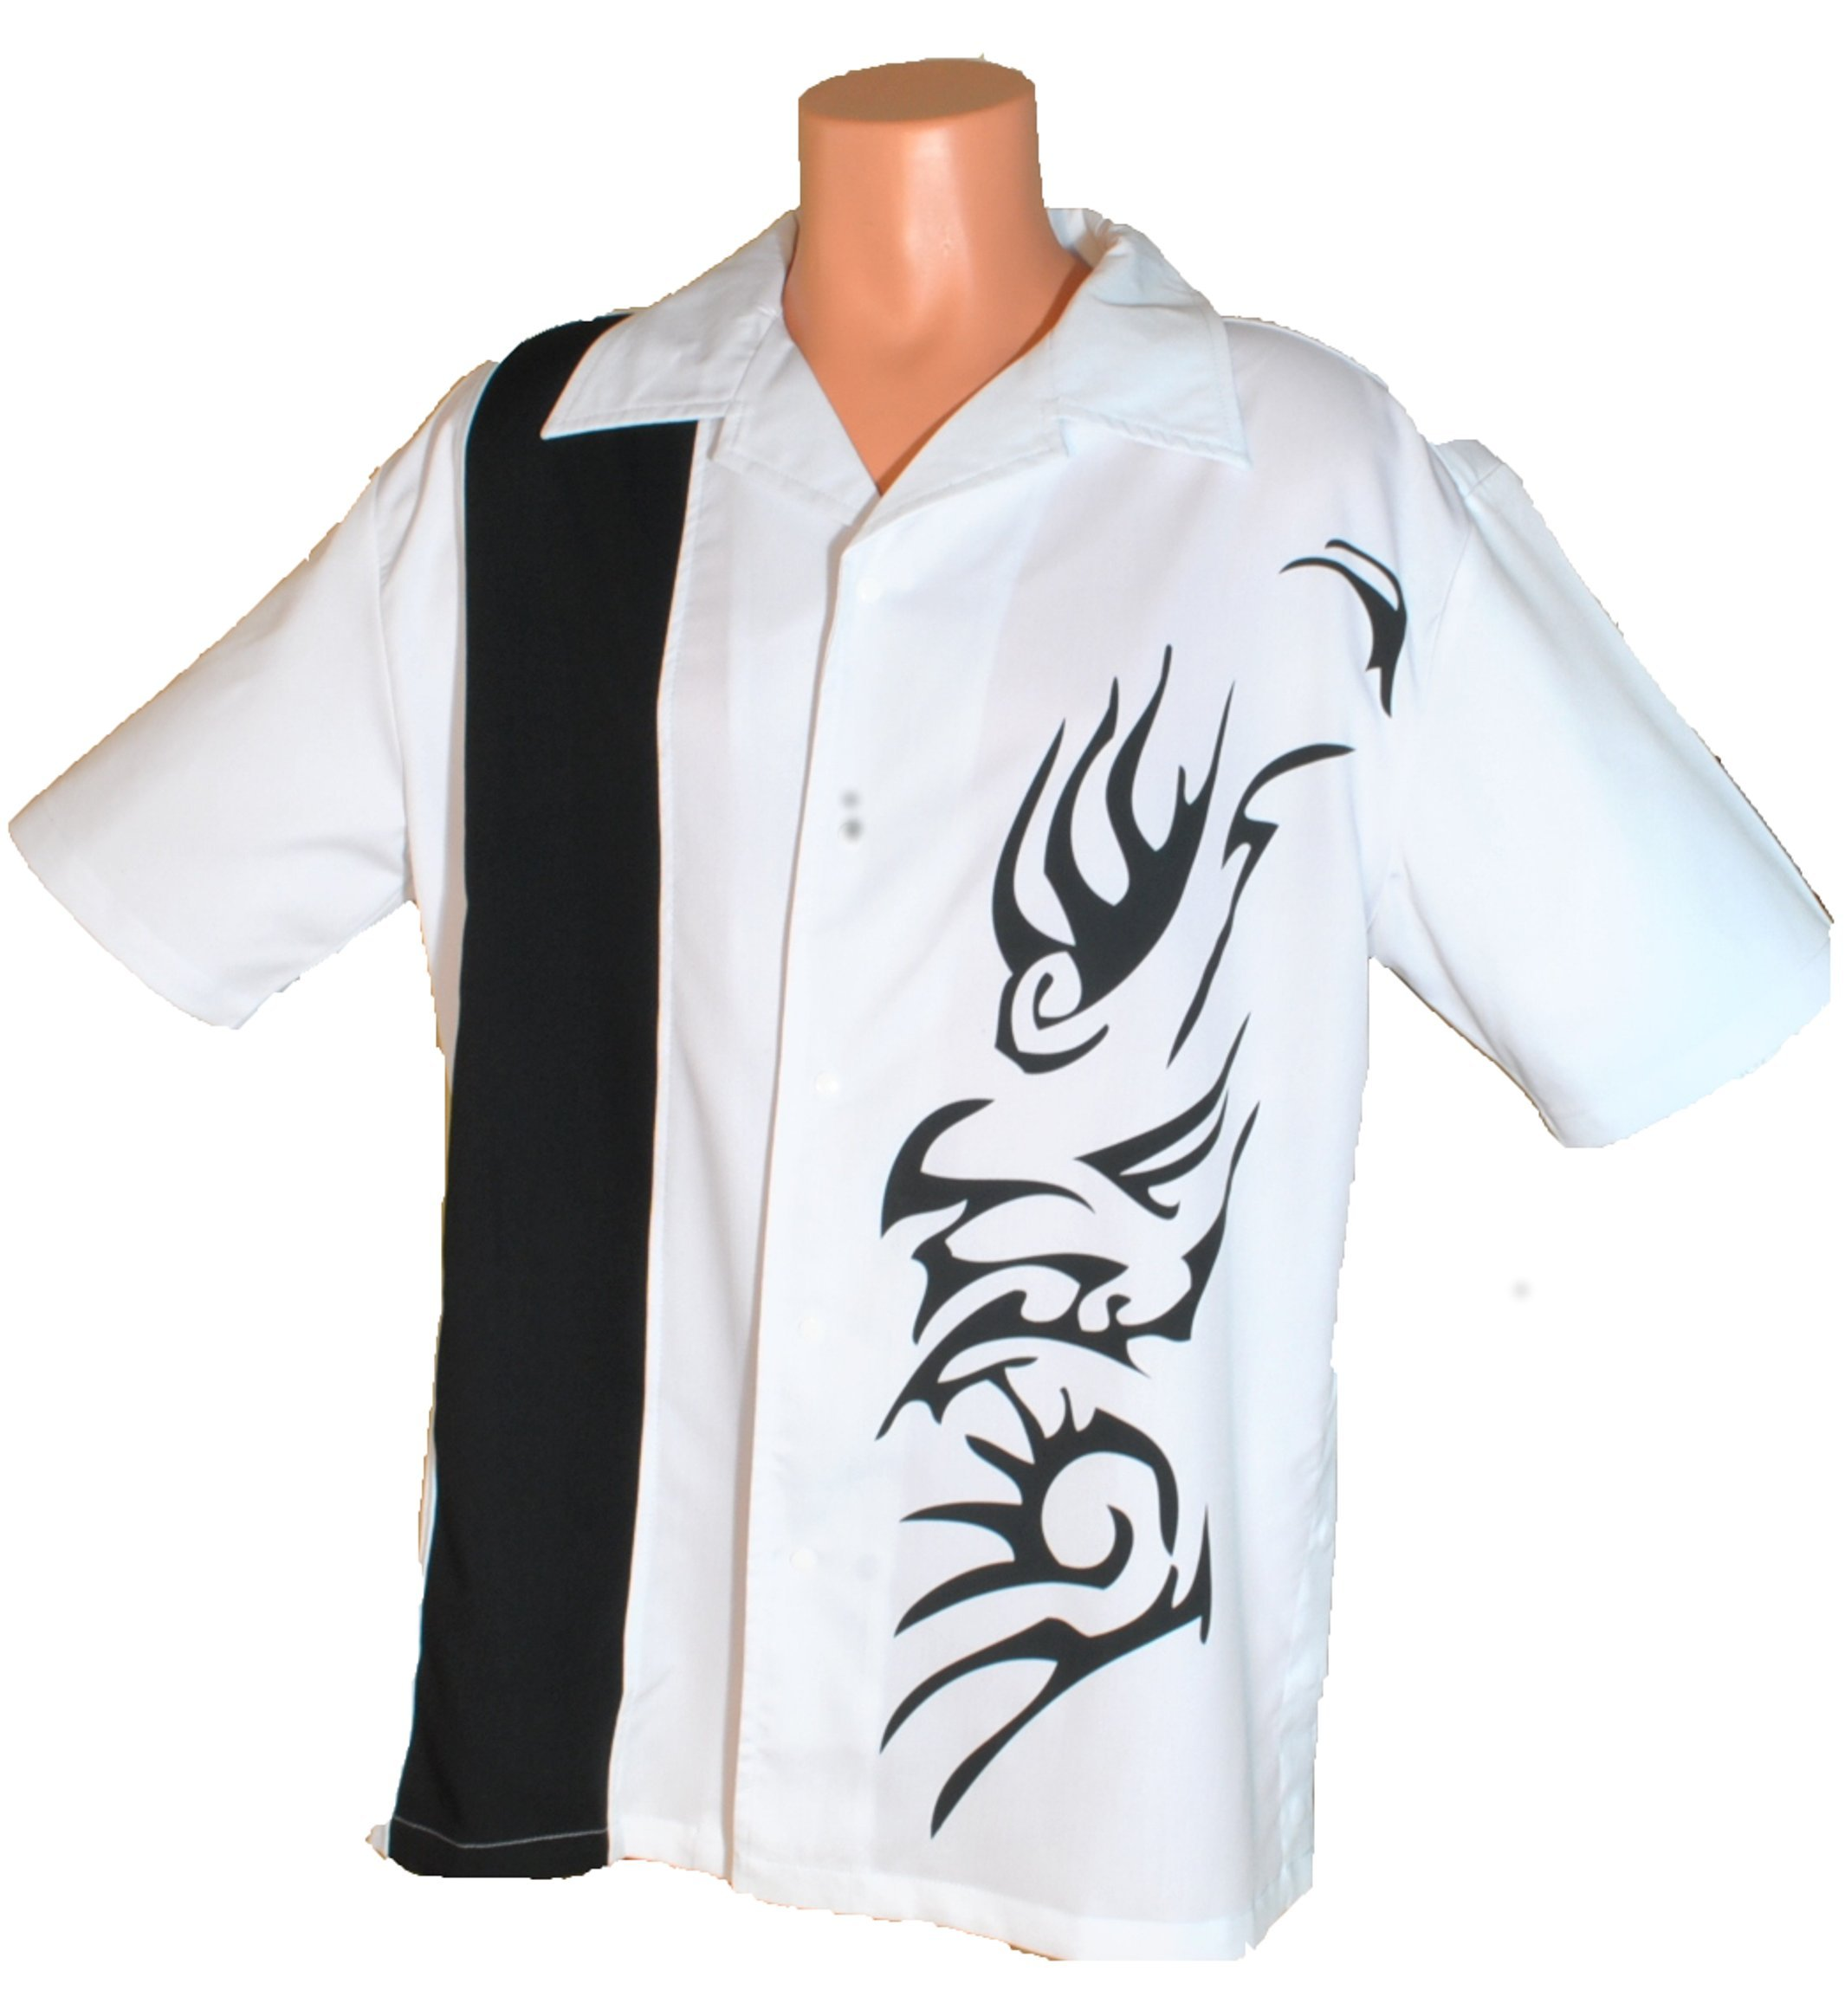 Mens New Concealed Weapons Shirt with Snaps. Size Medium. by Designs by Attila